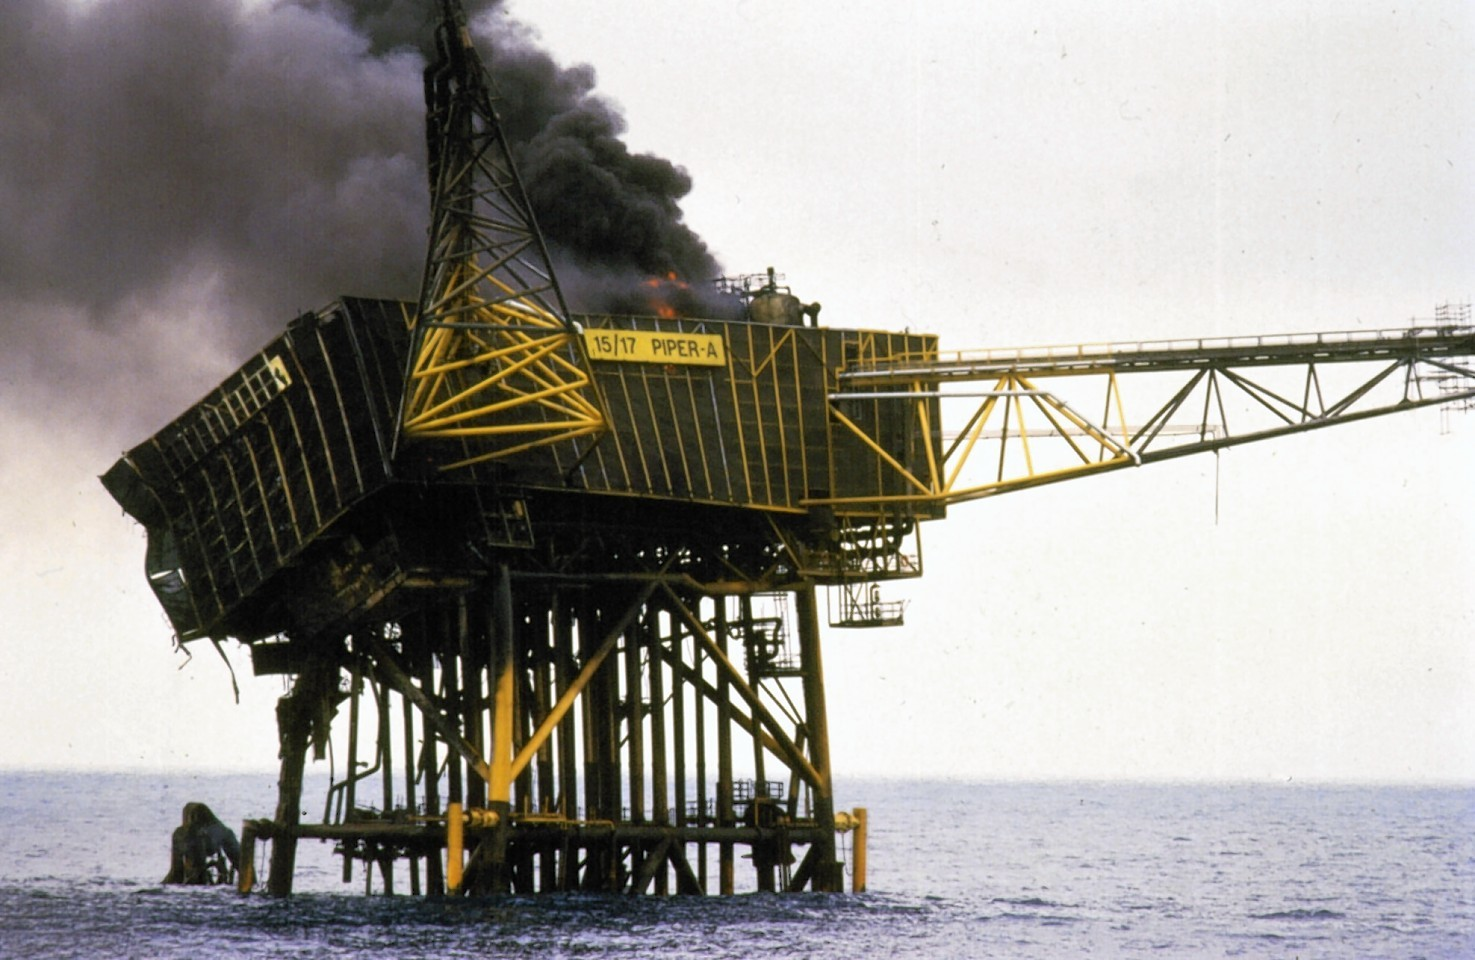 The Piper Alpha tragedy killed 167 workers.